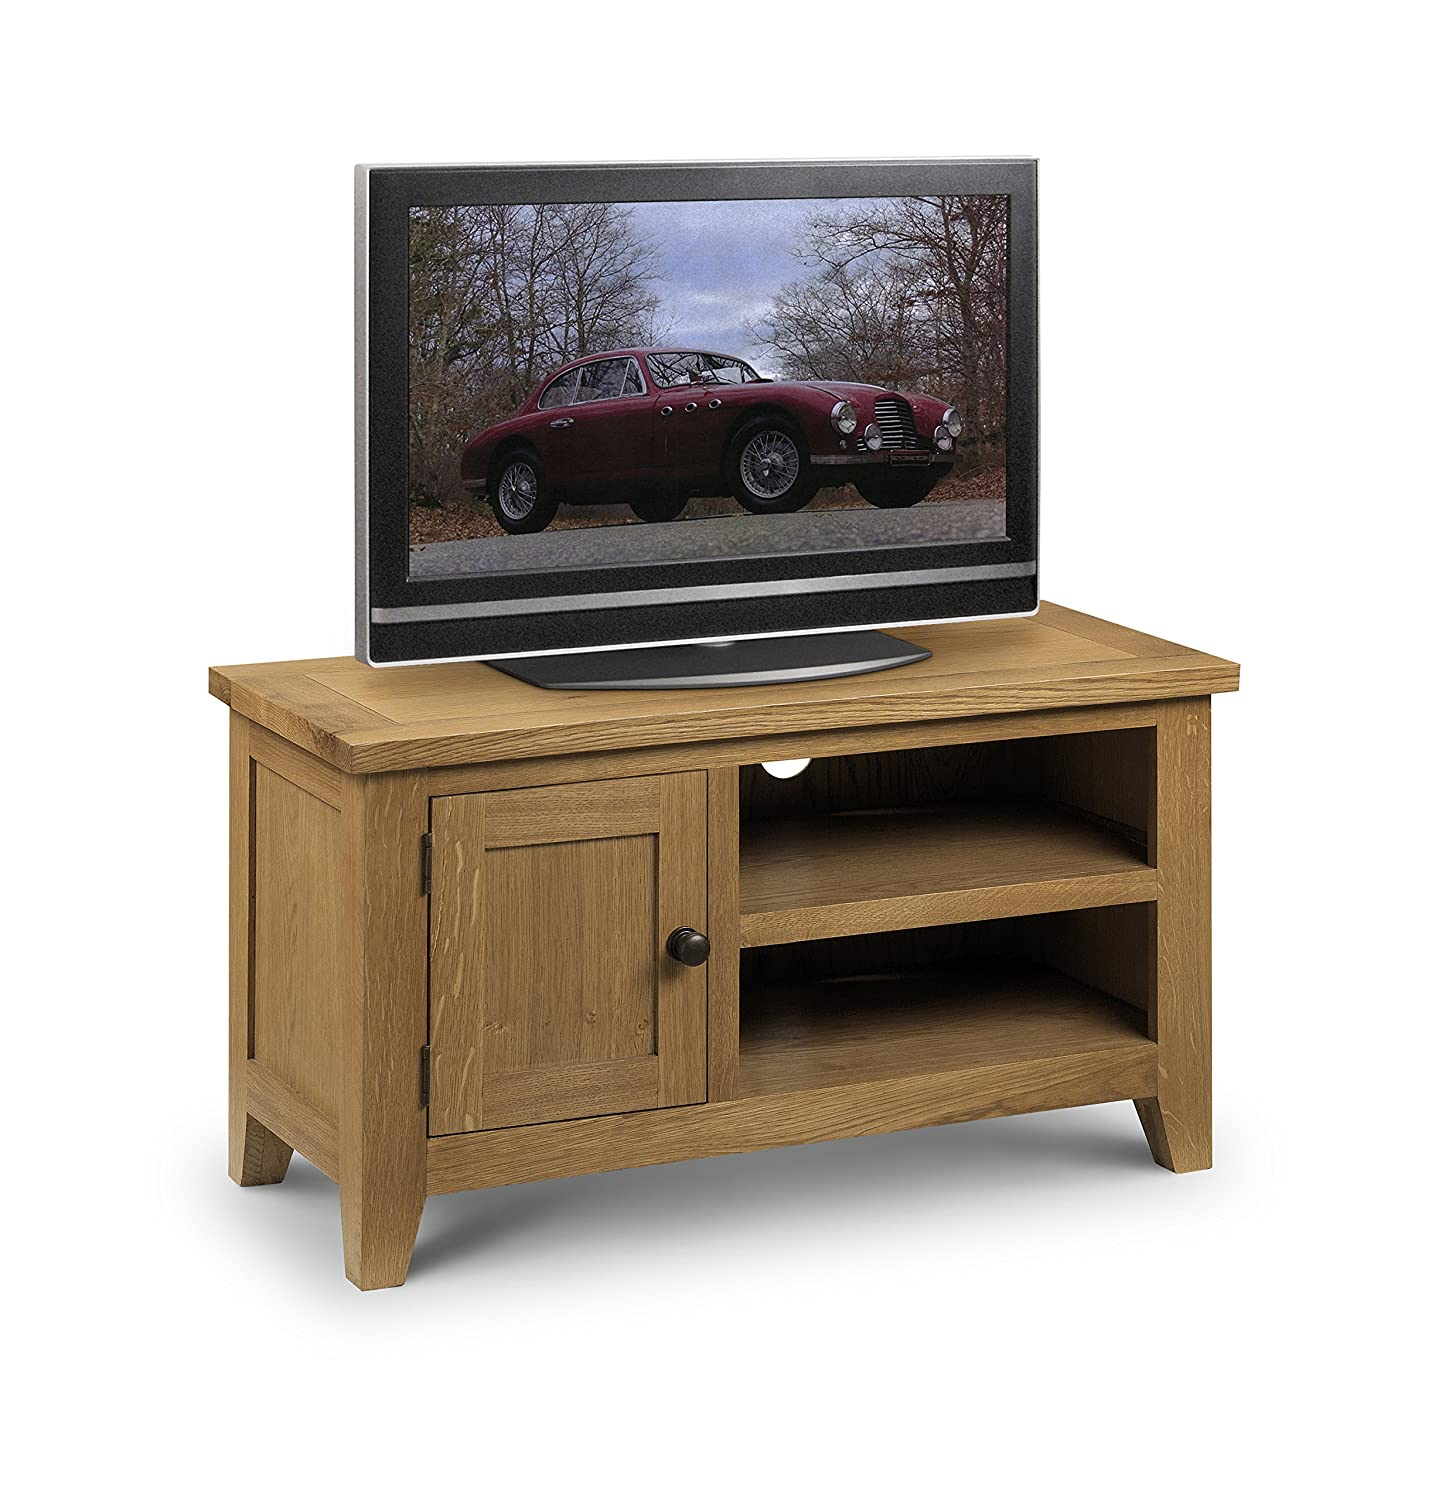 Oak Furniture Living Room Cotswold Rustic Solid Oak Small Tv Dvd Stand Living Room